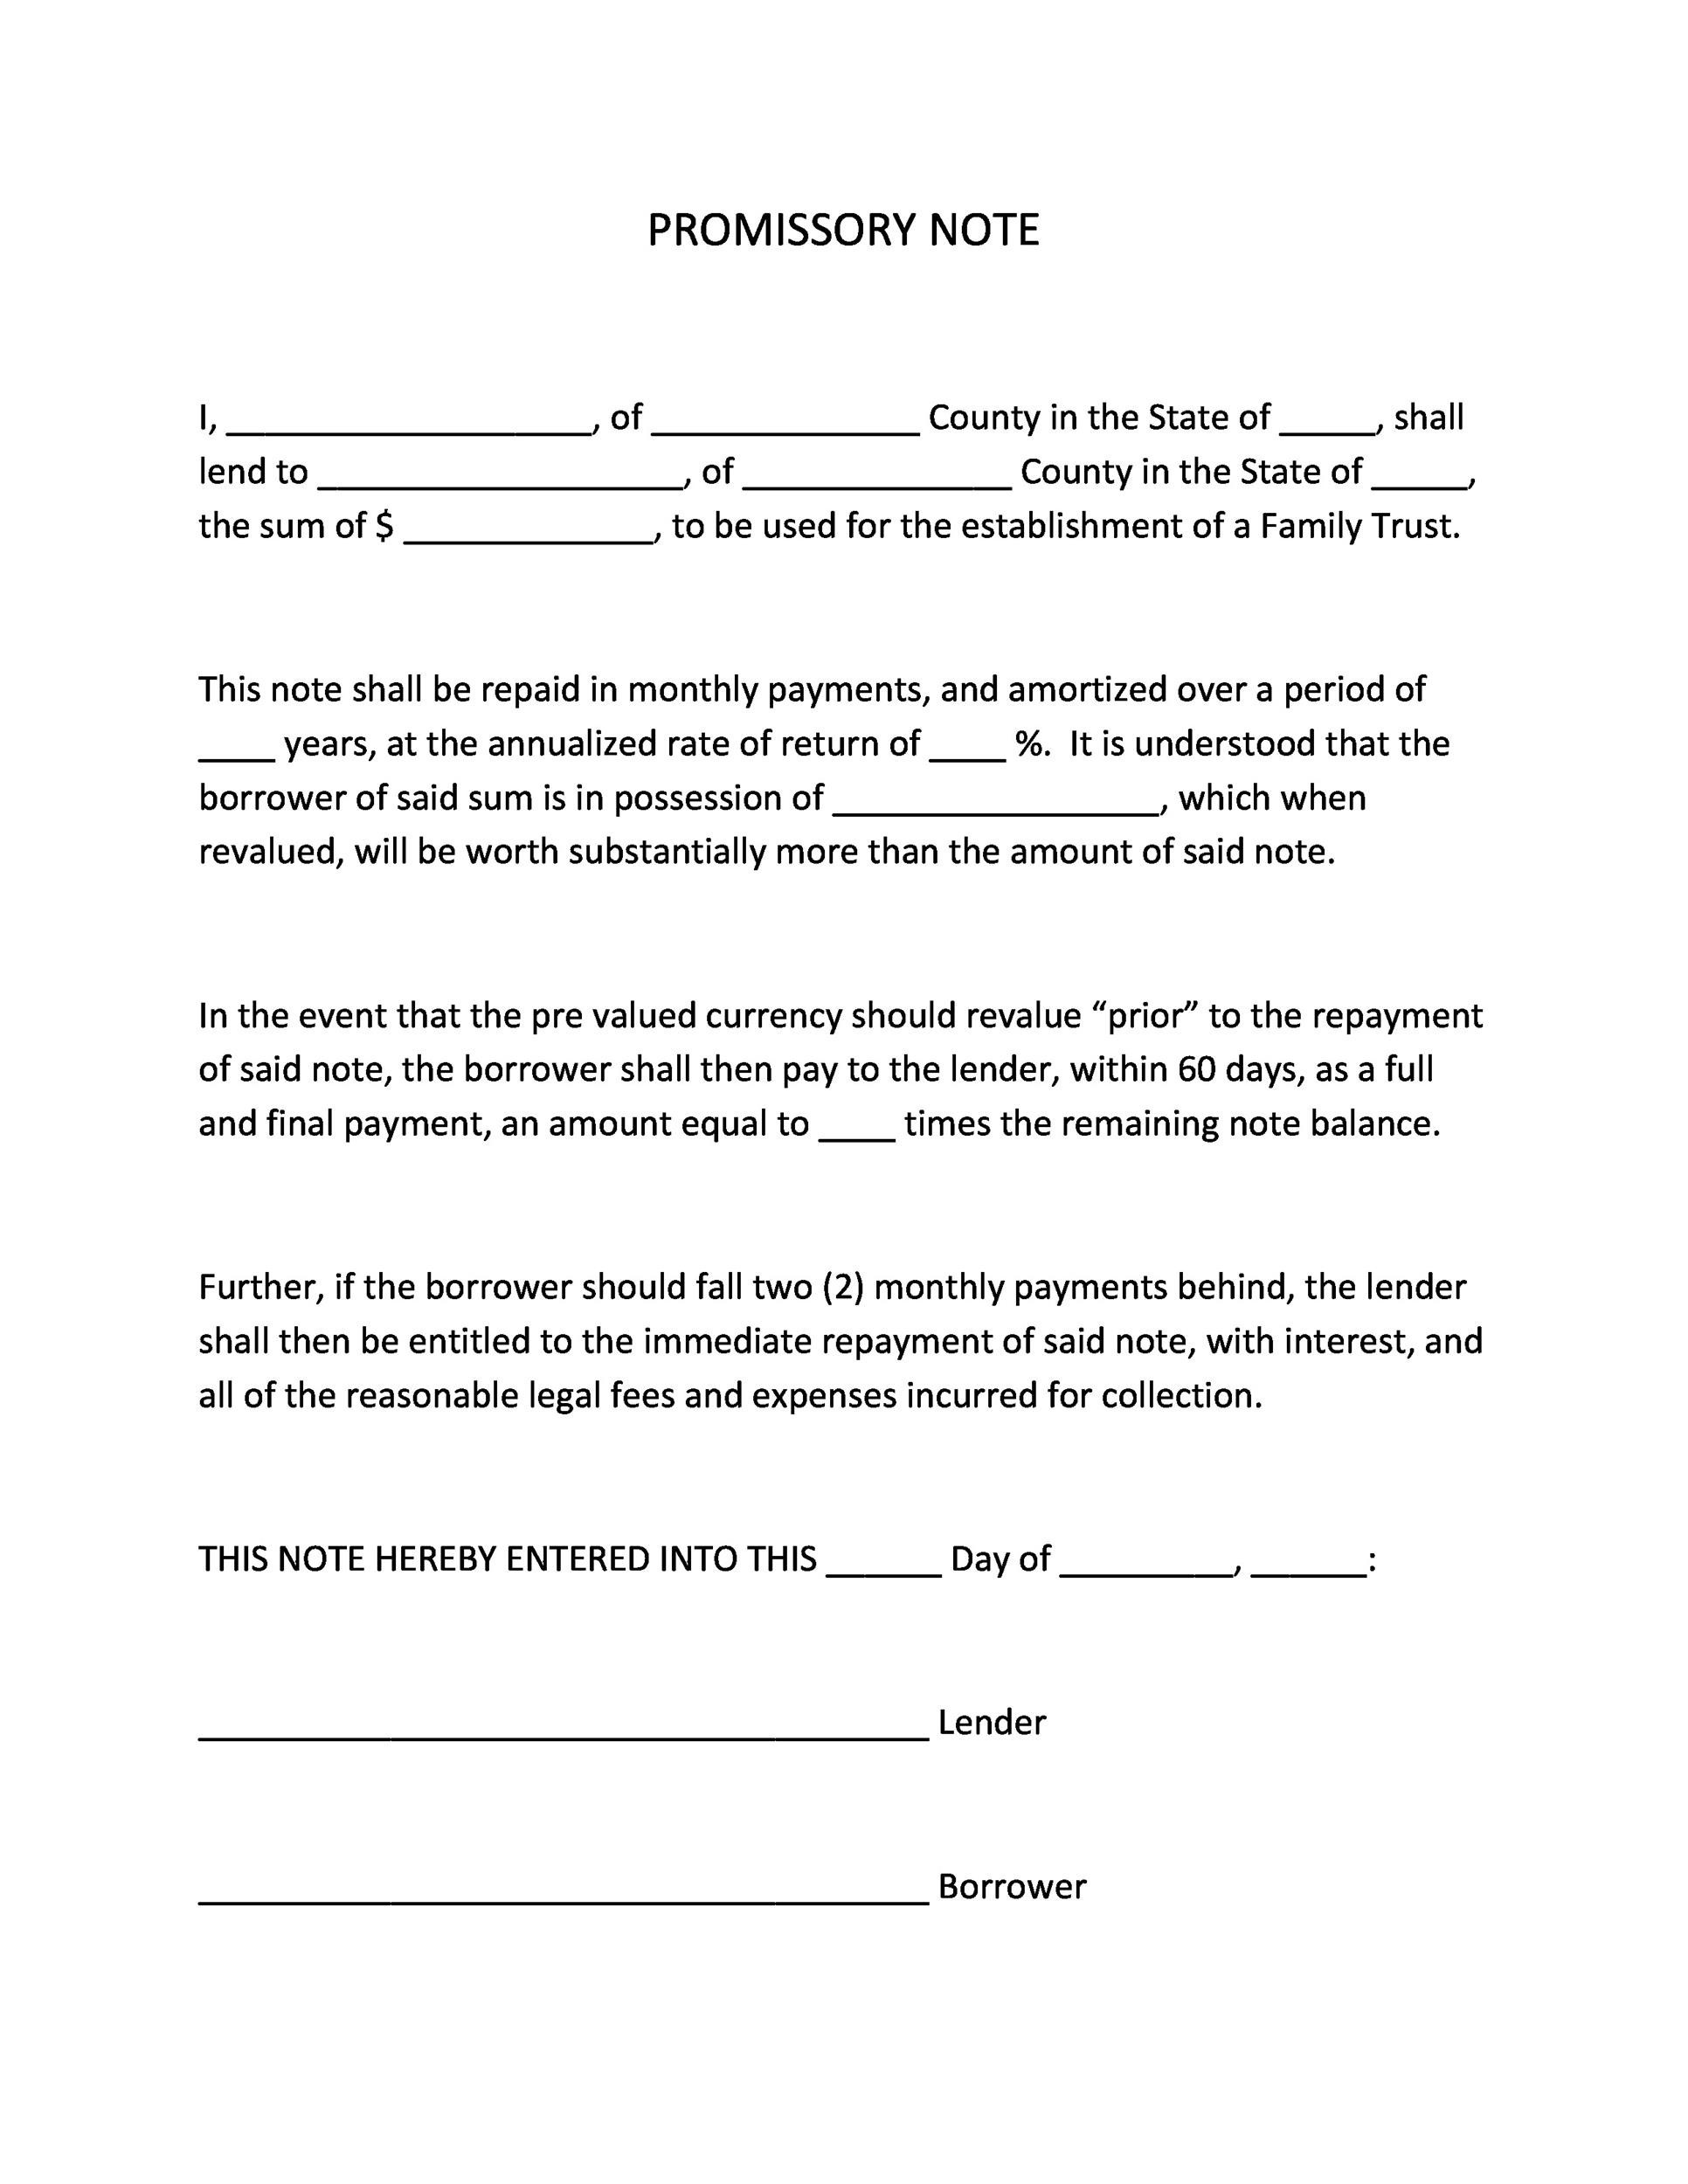 45 Free Promissory Note Templates Forms Word Pdf ᐅ